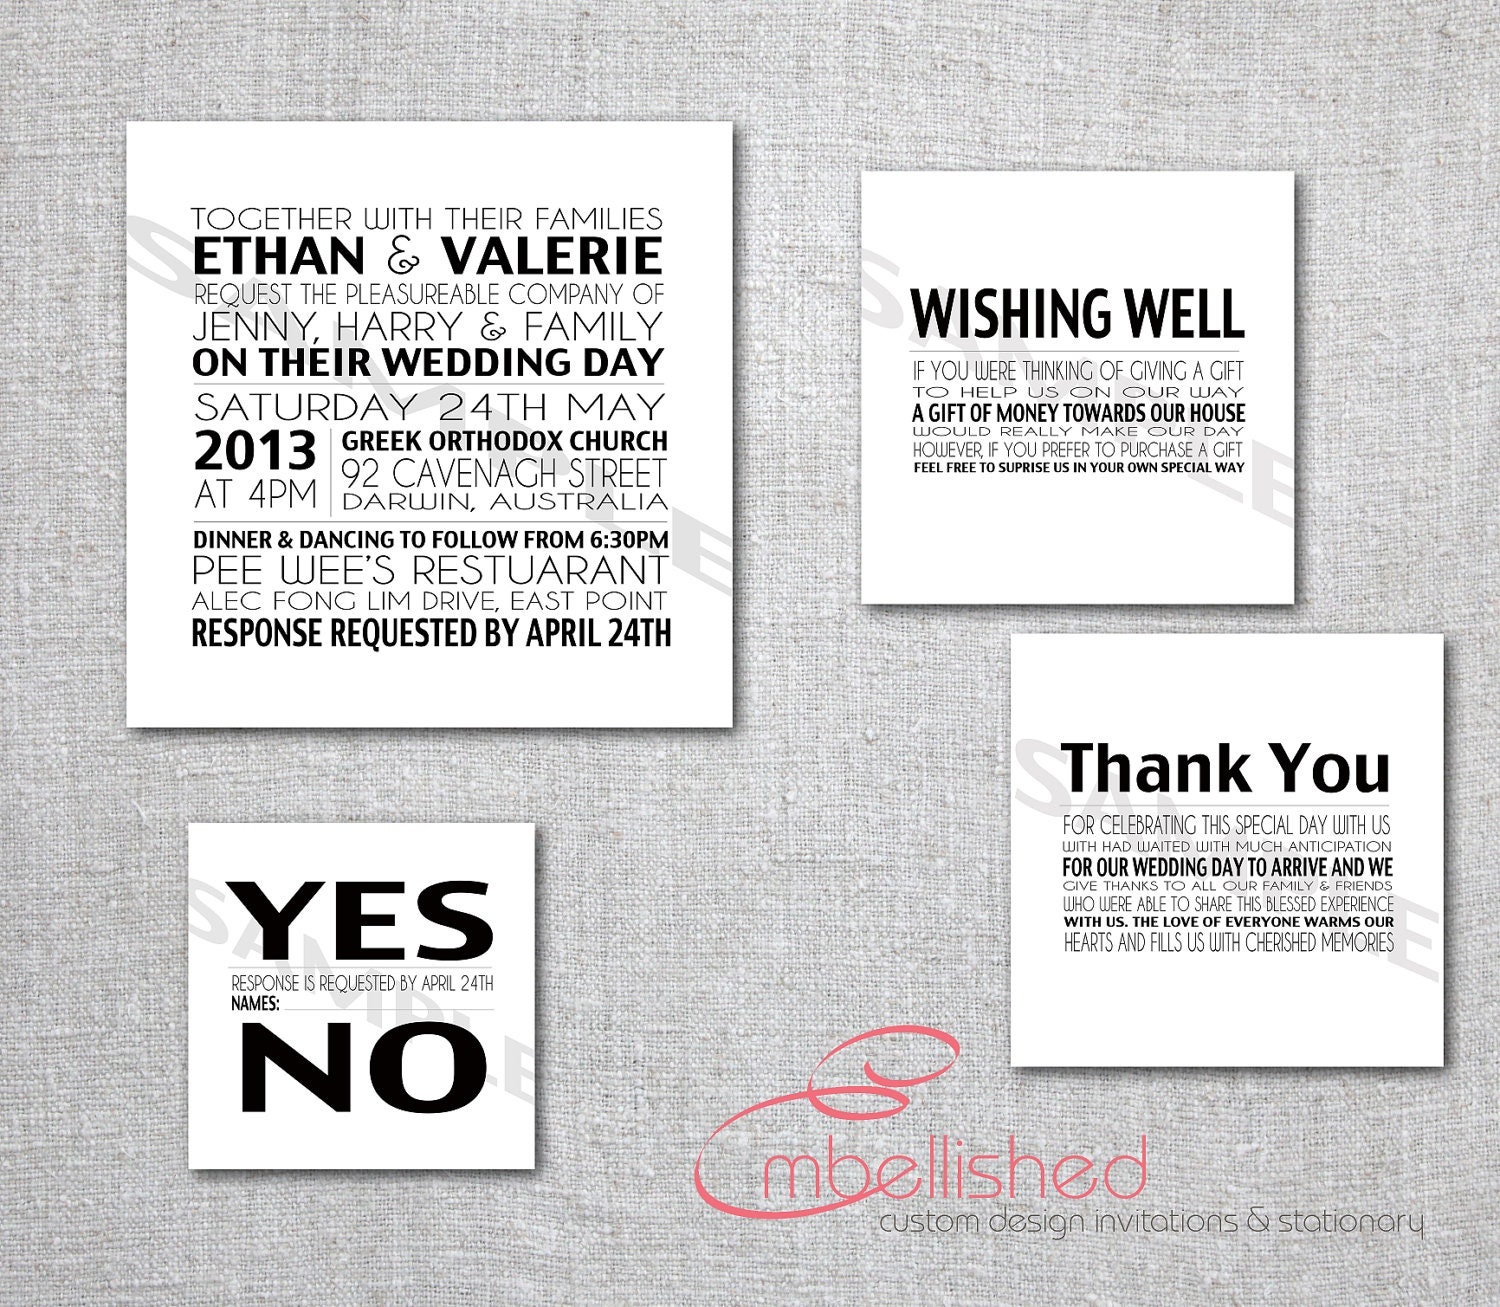 Invitation With Rsvp Wording is great invitations ideas